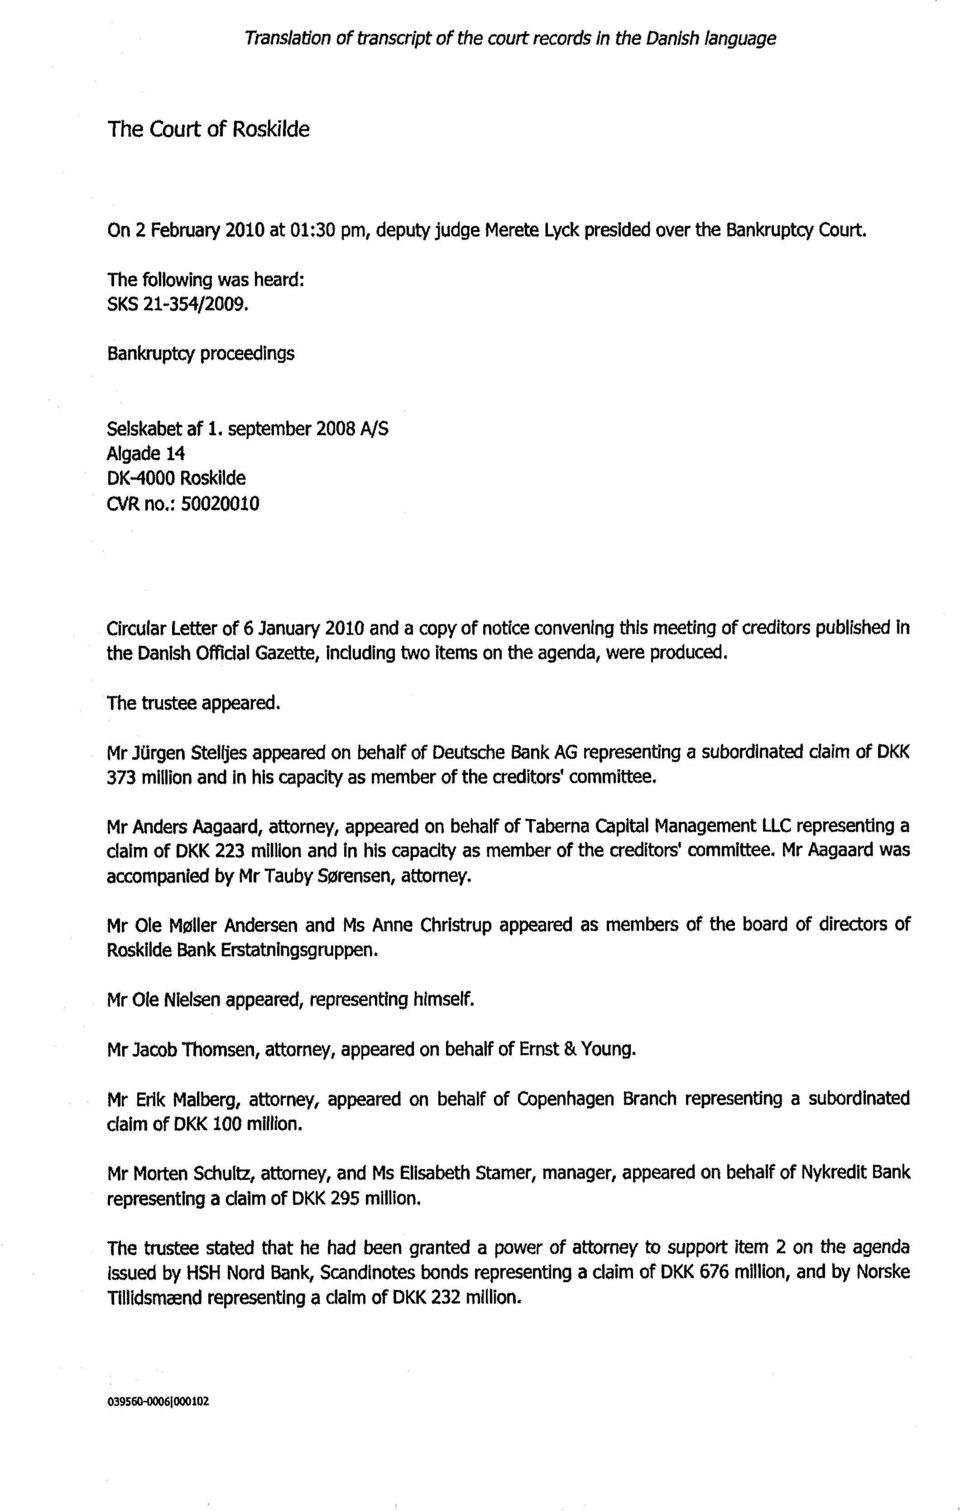 september 2008 A/S Algade 14 DK-4000 Roskilde CVRno,: 50020010 Circular Letter o f 6 January 2010 and a copy o f notice convening this meeting o f creditors published in the Danish Official Gazette,